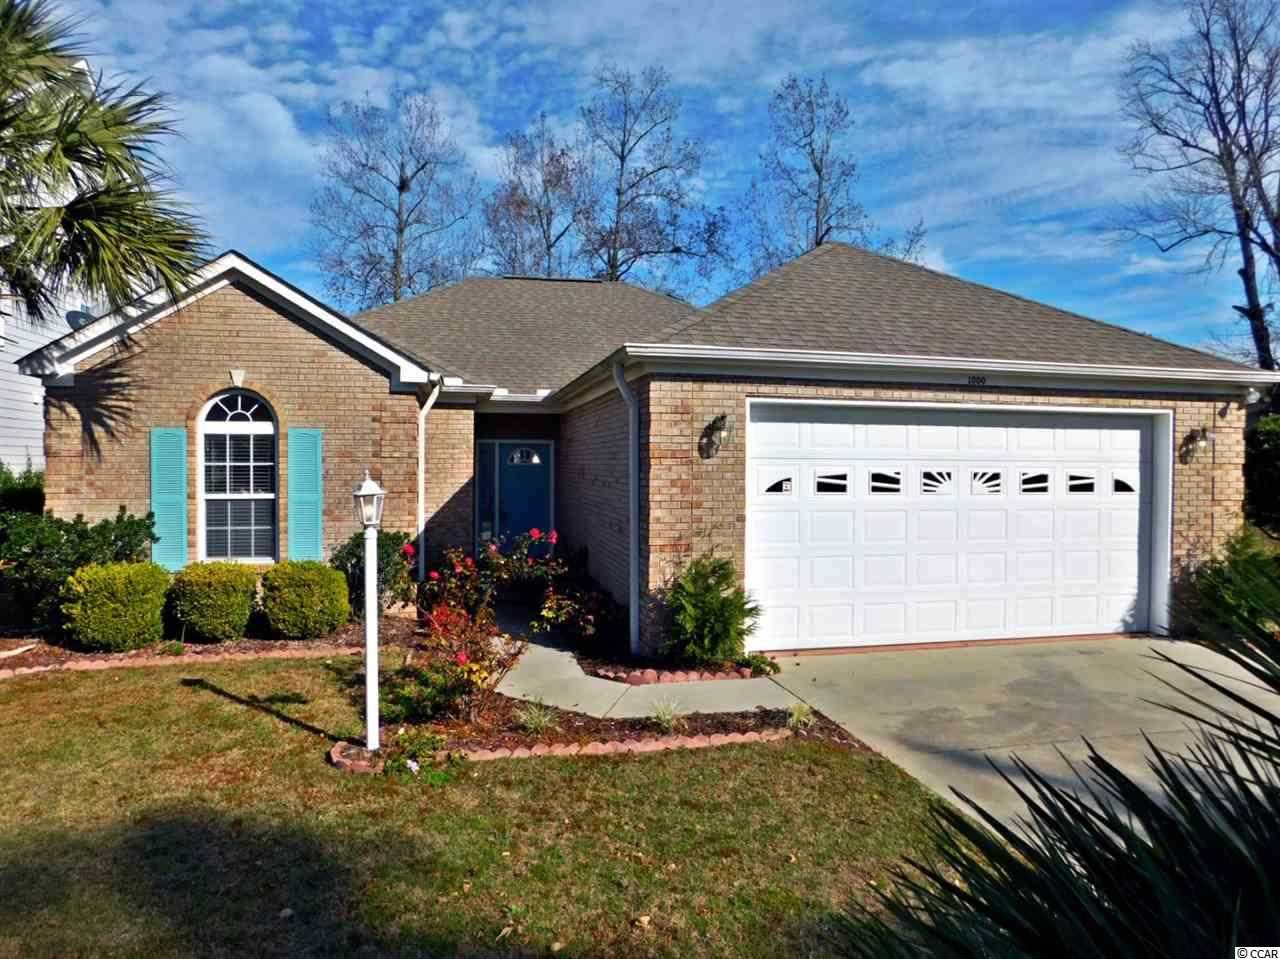 1000 Summers Place North Myrtle Beach, SC 29582 | MLS 1725298 Photo 1